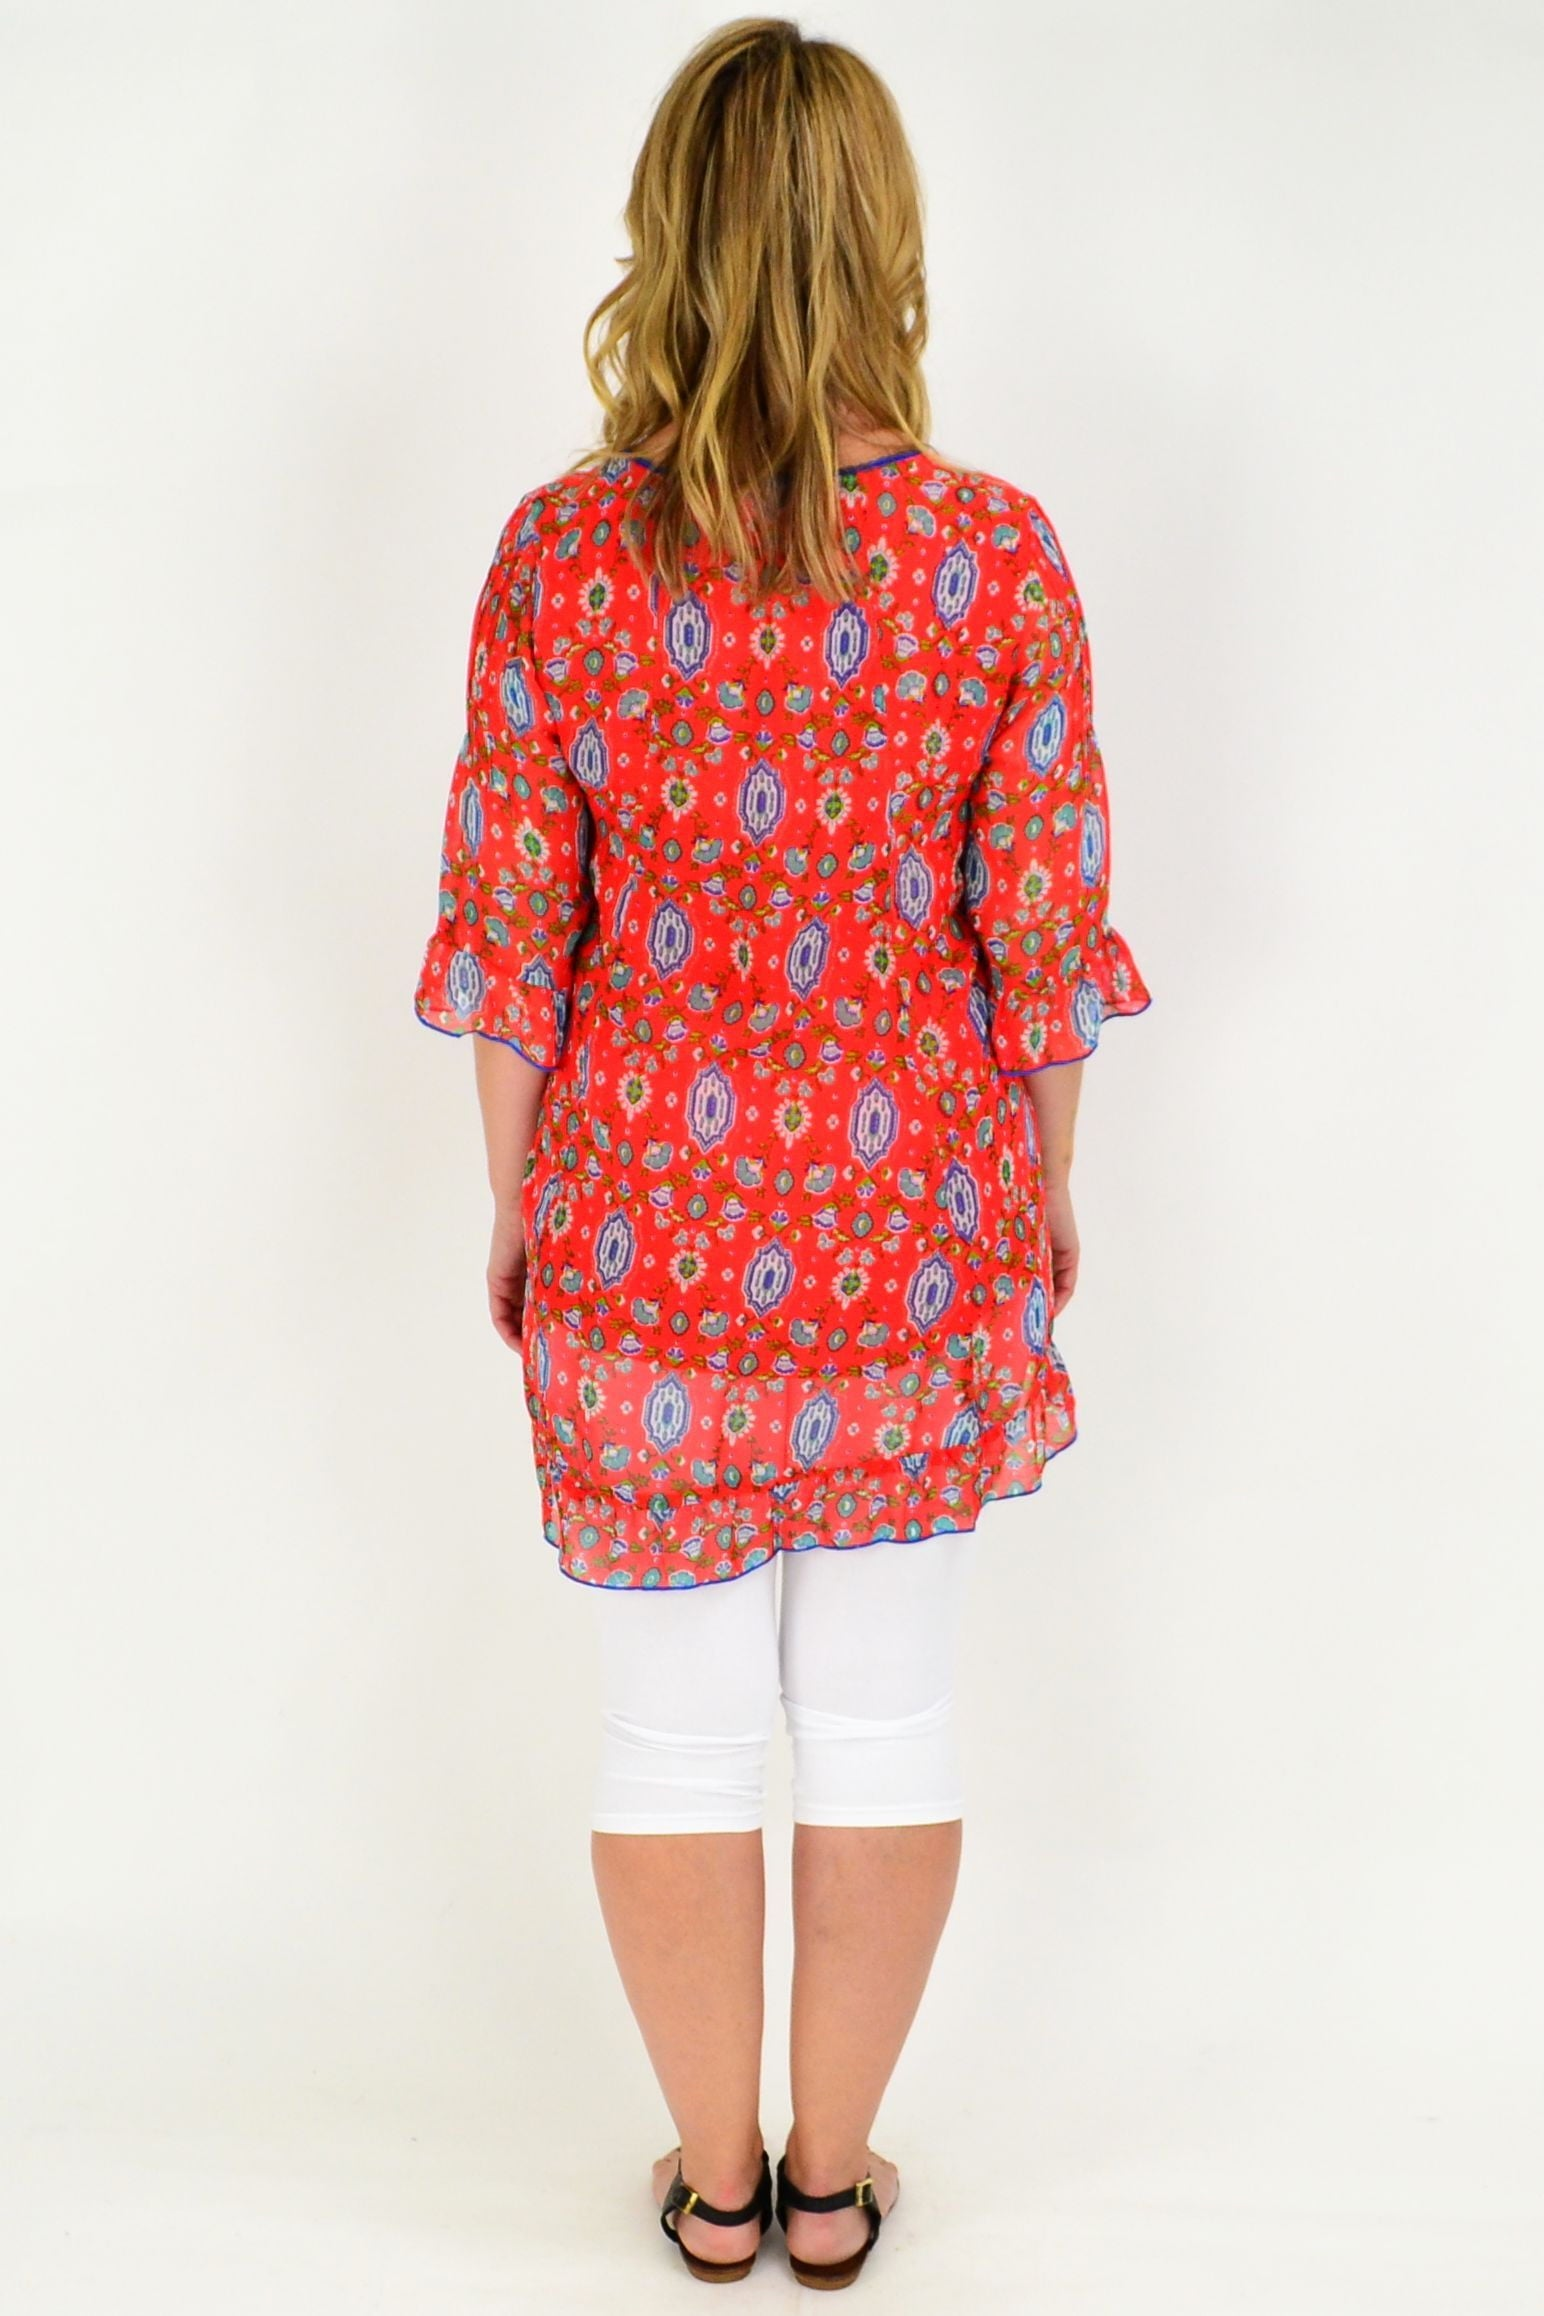 Kashi Orange Cotton Lined Tunic size and price